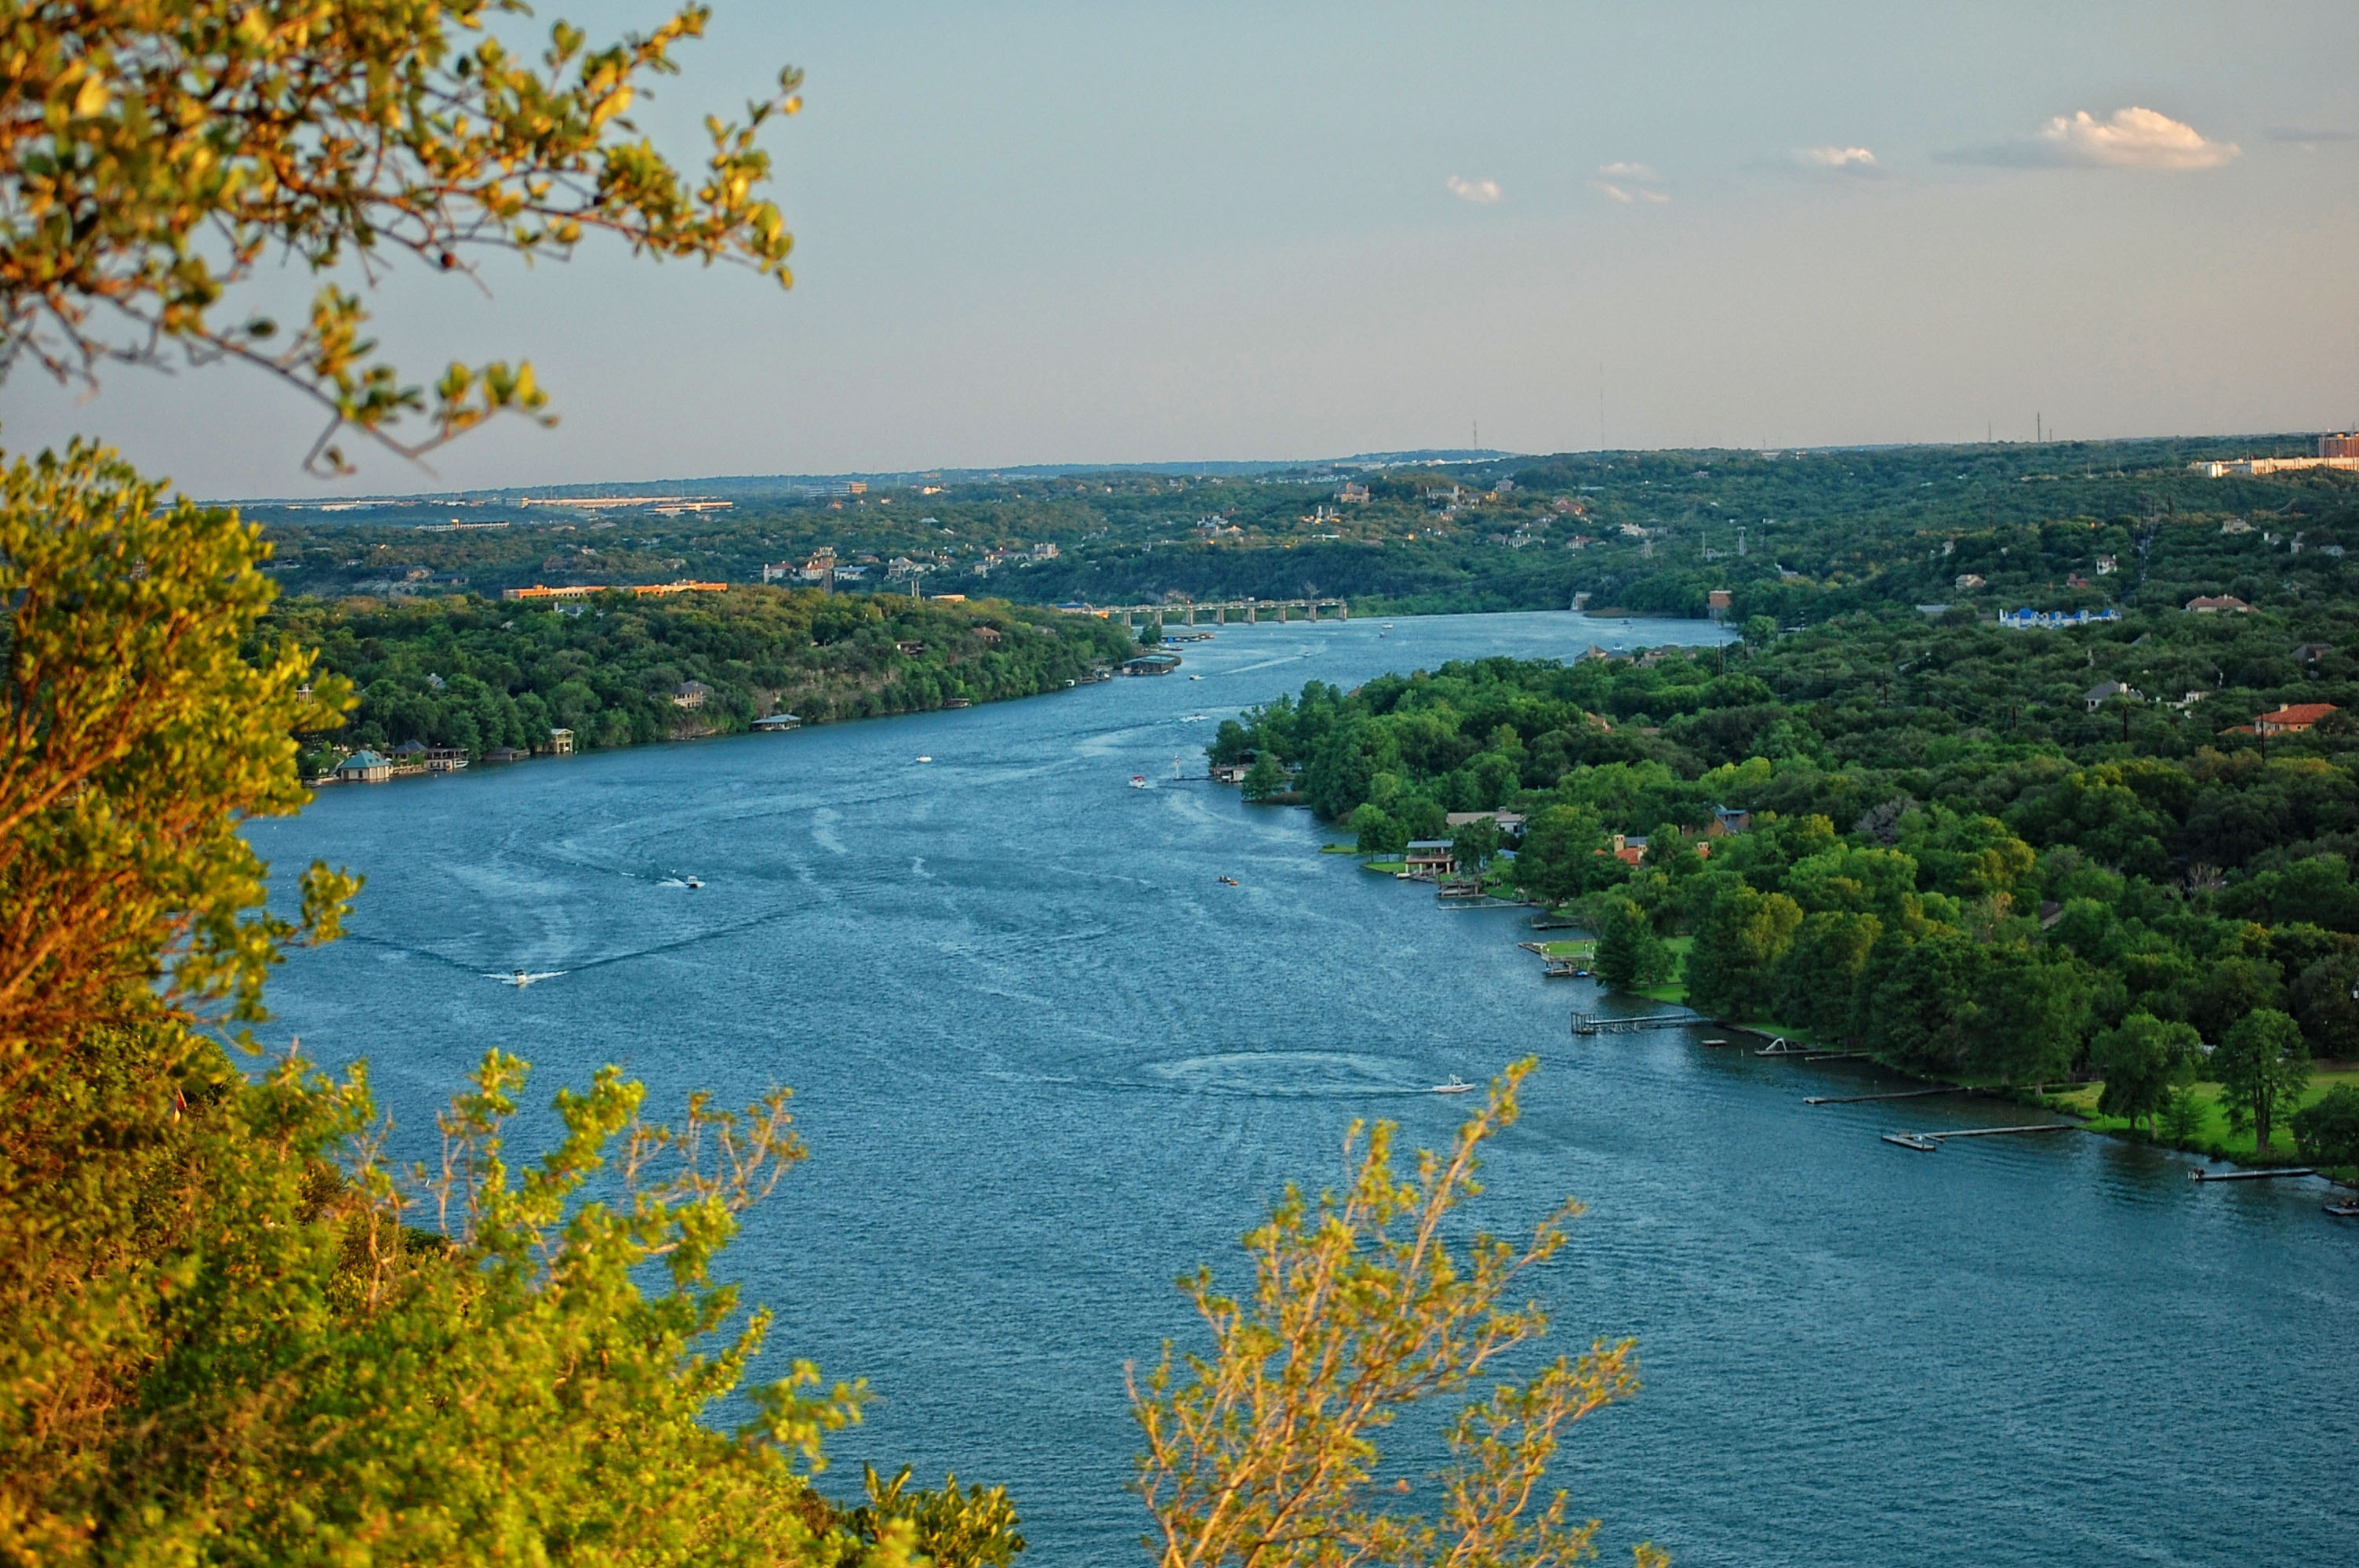 mt bonnell in the evening